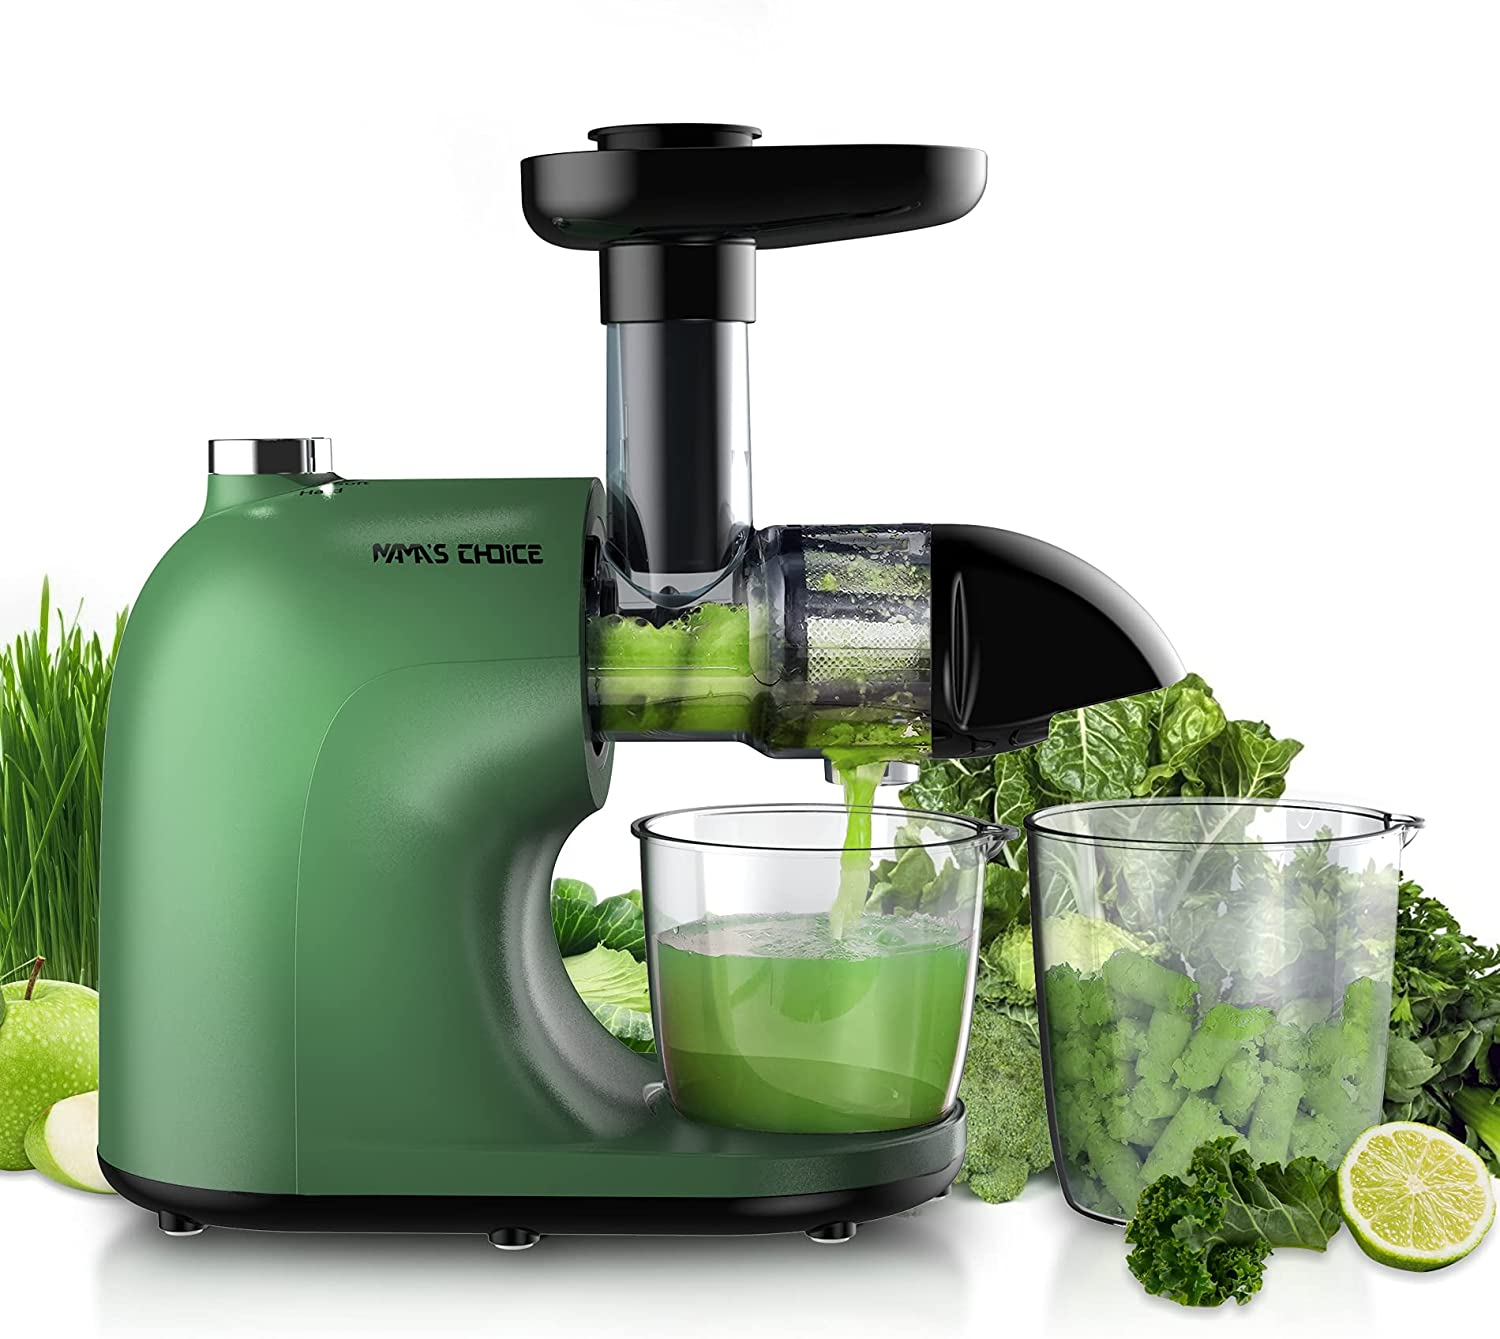 Juicer Machines, MAMA'S CHOICE Slow Juicer Masticating Juicer Extractor Easy to Clean, Cold Press Juicer with Hard, Soft, Reverse Modes, Quiet Motor, Brush, Recipes, Higher Juicer Yield, Drier Pulp